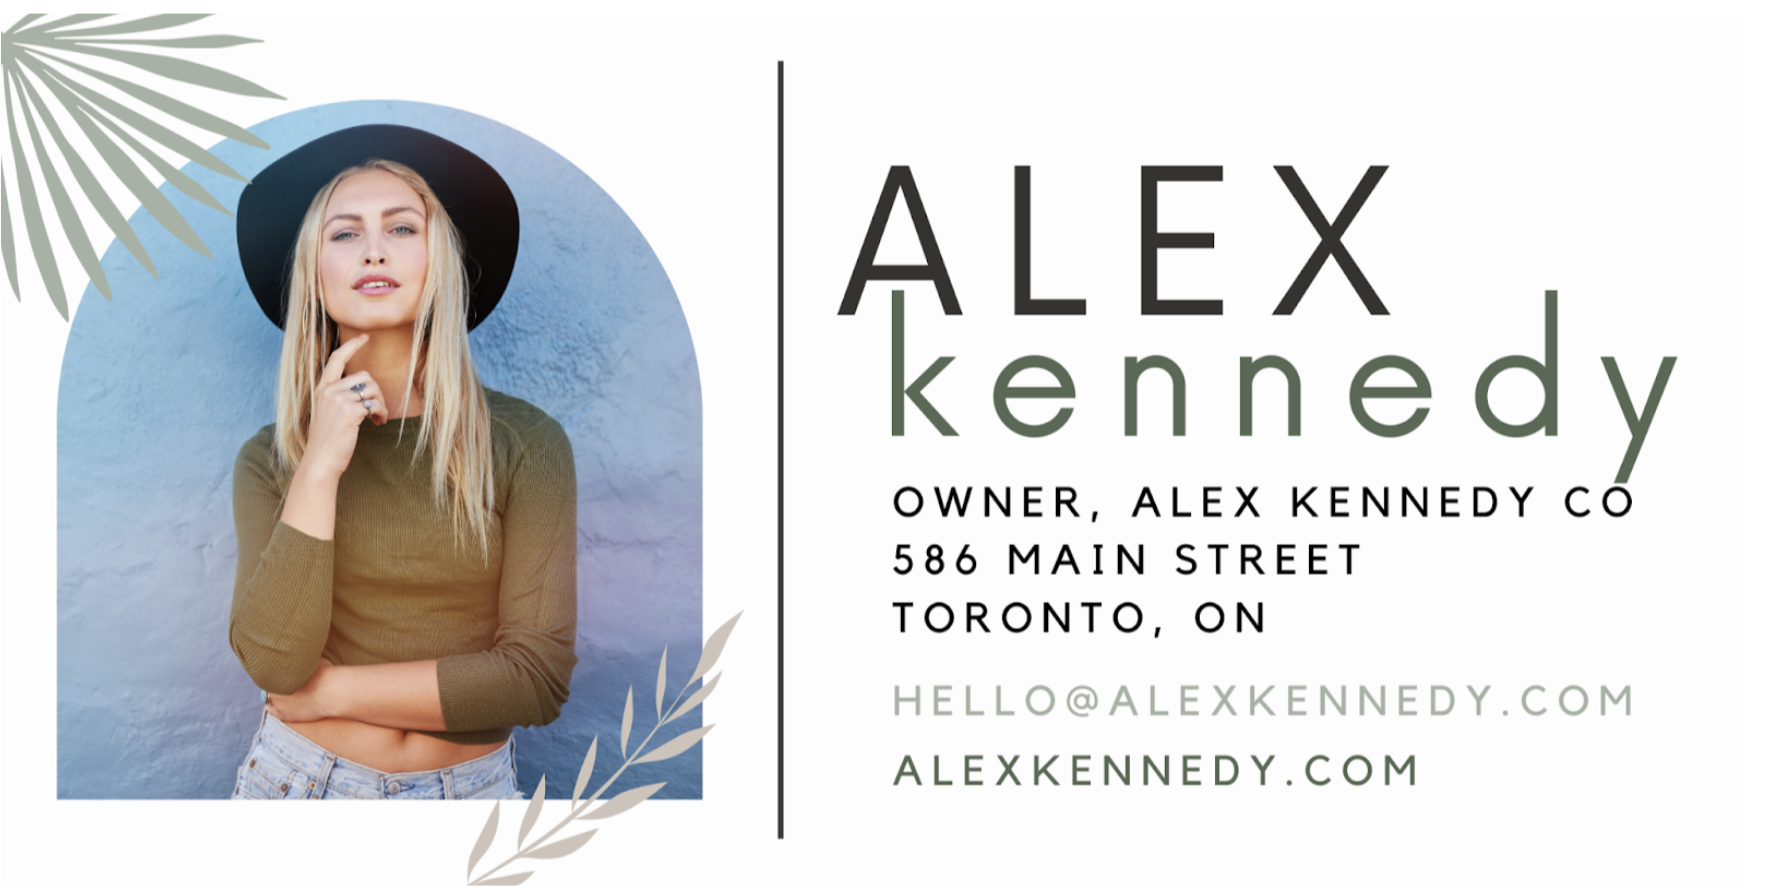 Email signature made in Canva